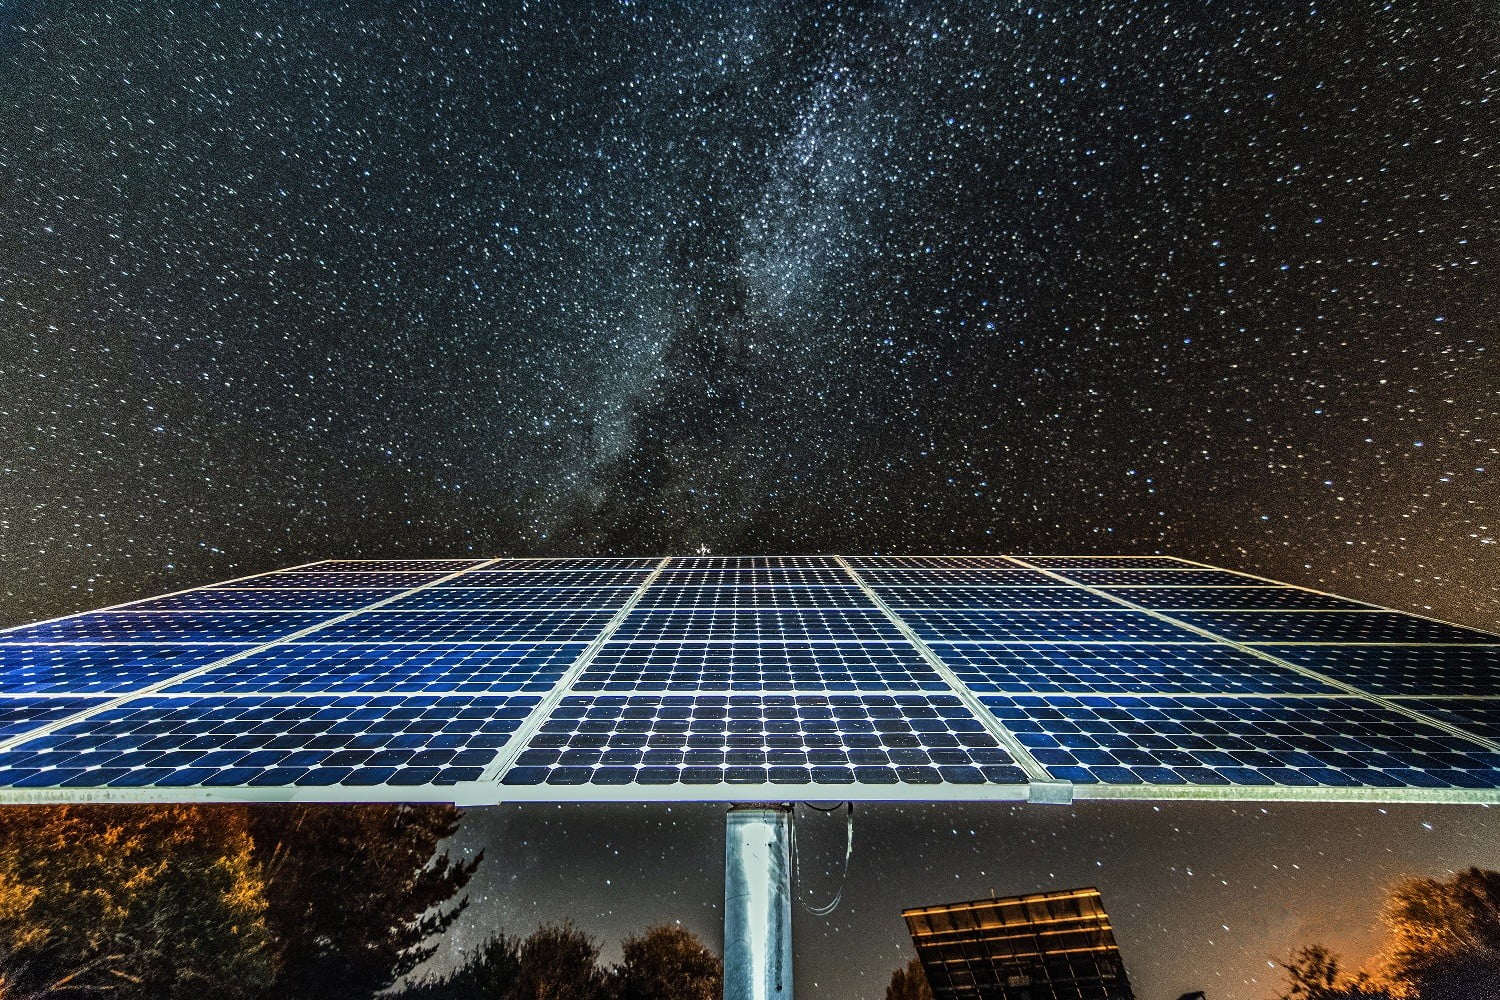 New 'reverse solar panel' generates power at night by radiating heat into space